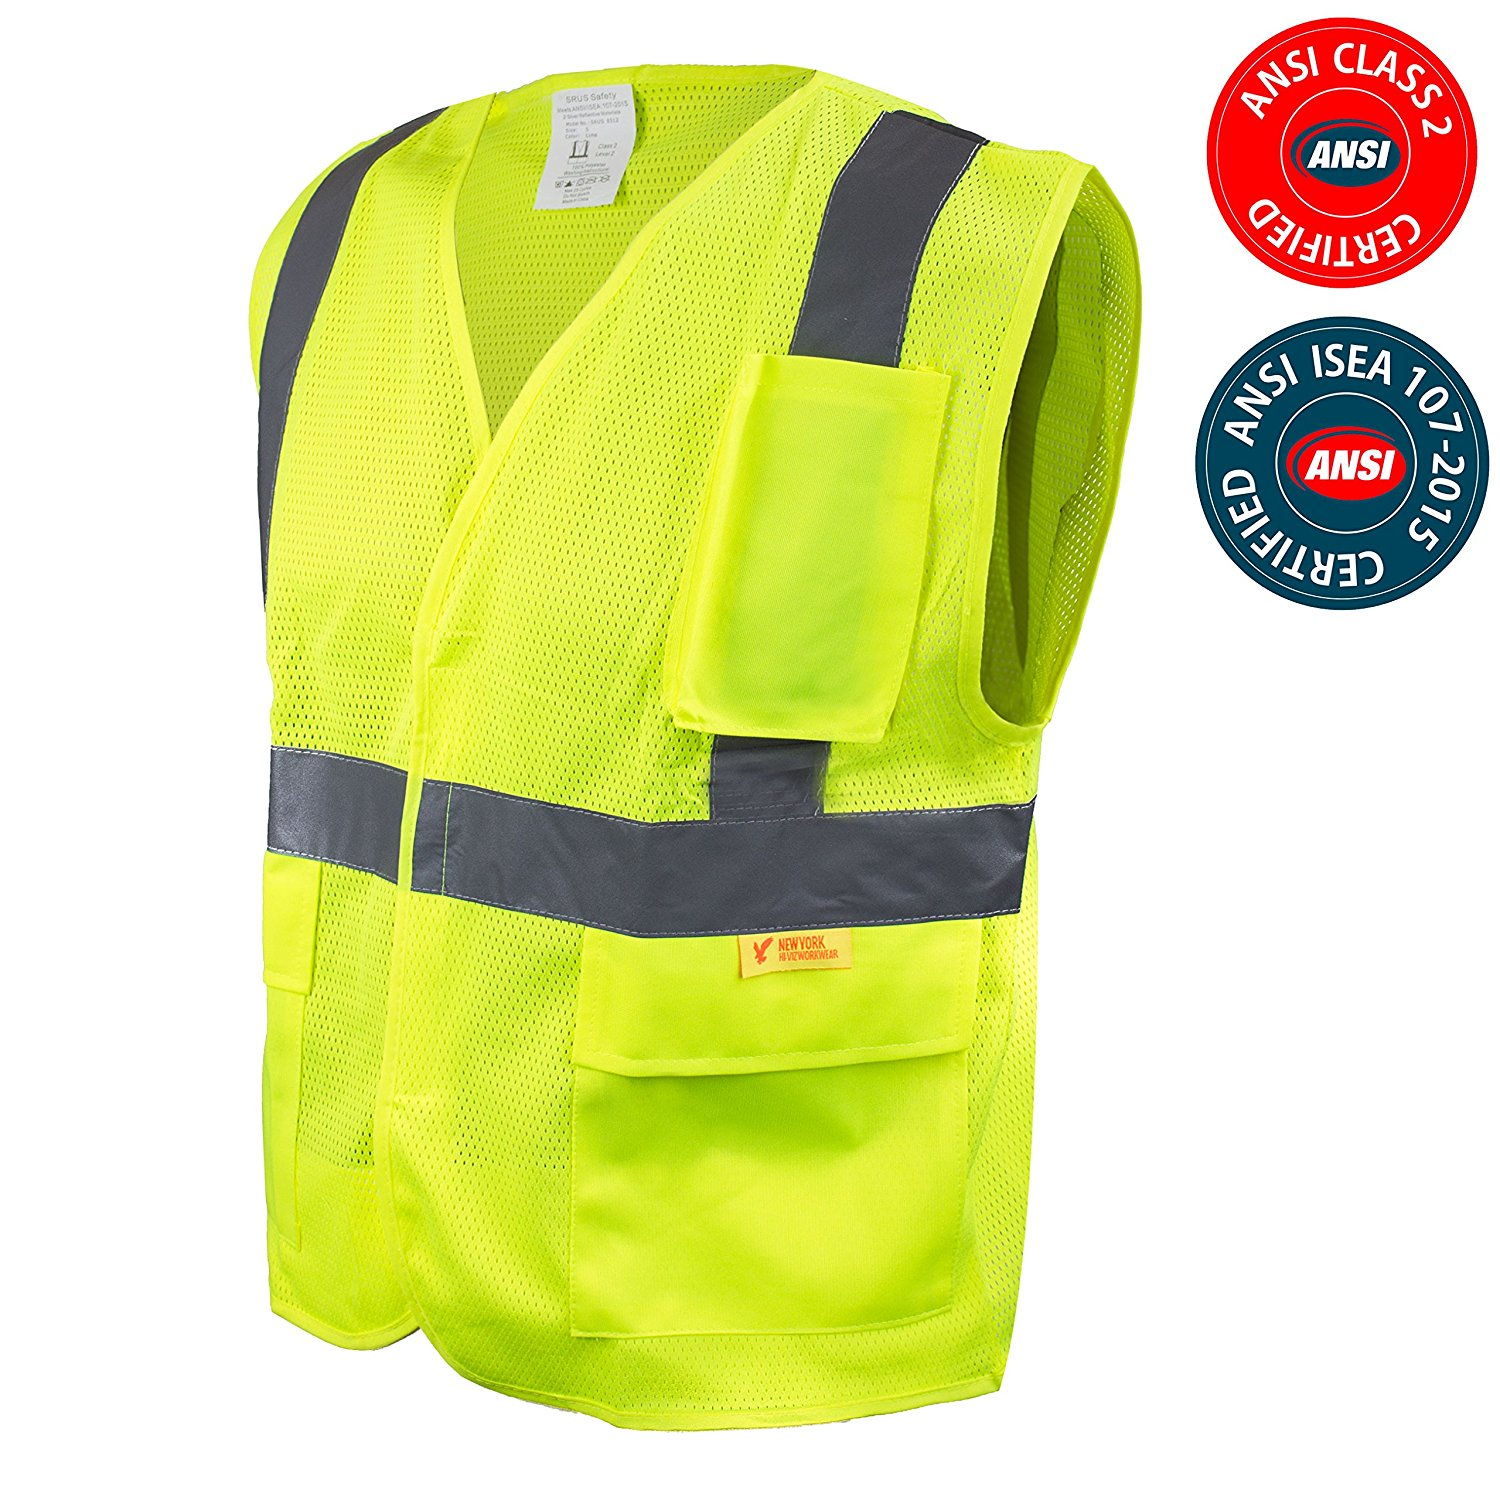 RK Safety High Visibility Safety Vest with Reflective Strips and Pockets - ANSI Class 2 - Neon Yellow / Medium